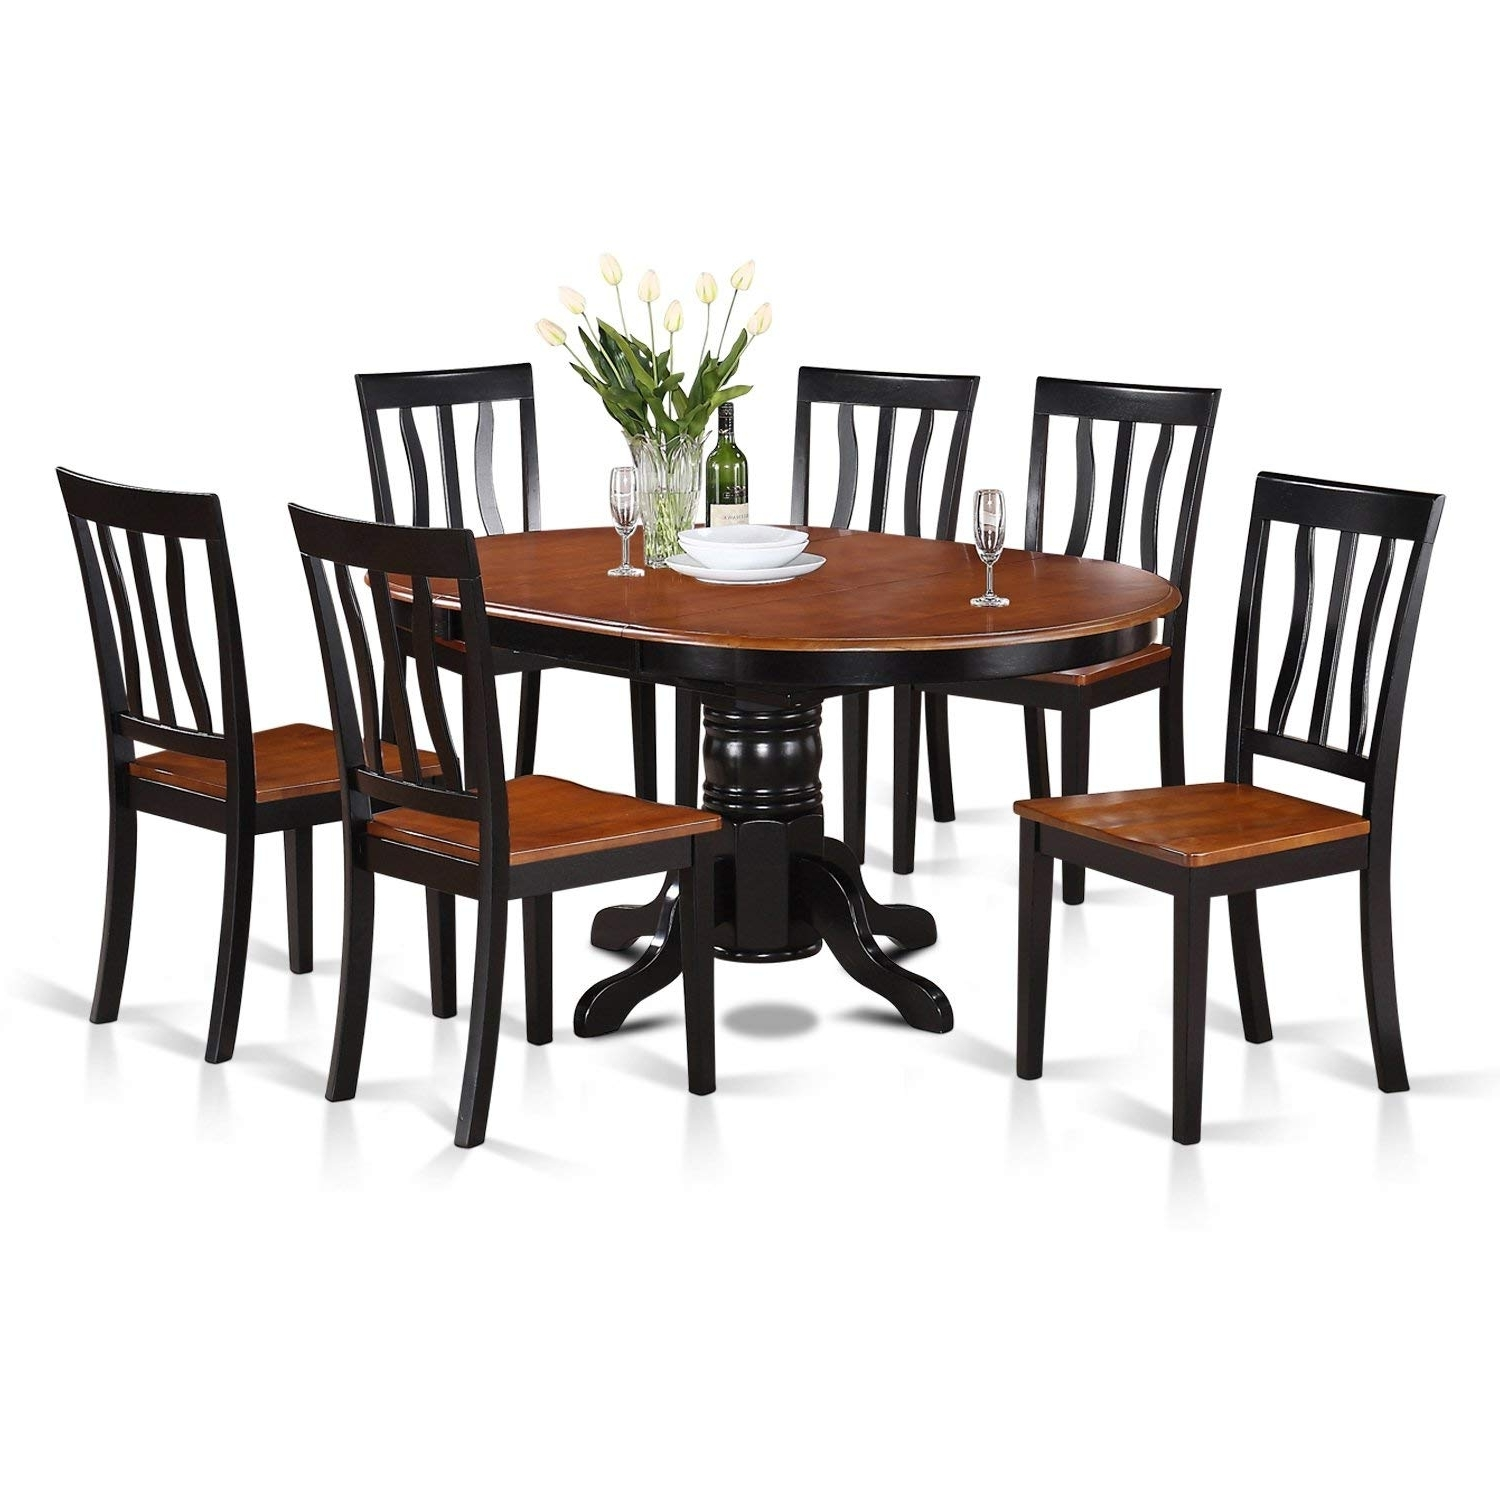 Jaxon 7 Piece Rectangle Dining Sets With Wood Chairs With Regard To Well Liked Amazon: East West Furniture Avat7 Blk W 7 Piece Dining Table Set (Gallery 13 of 25)